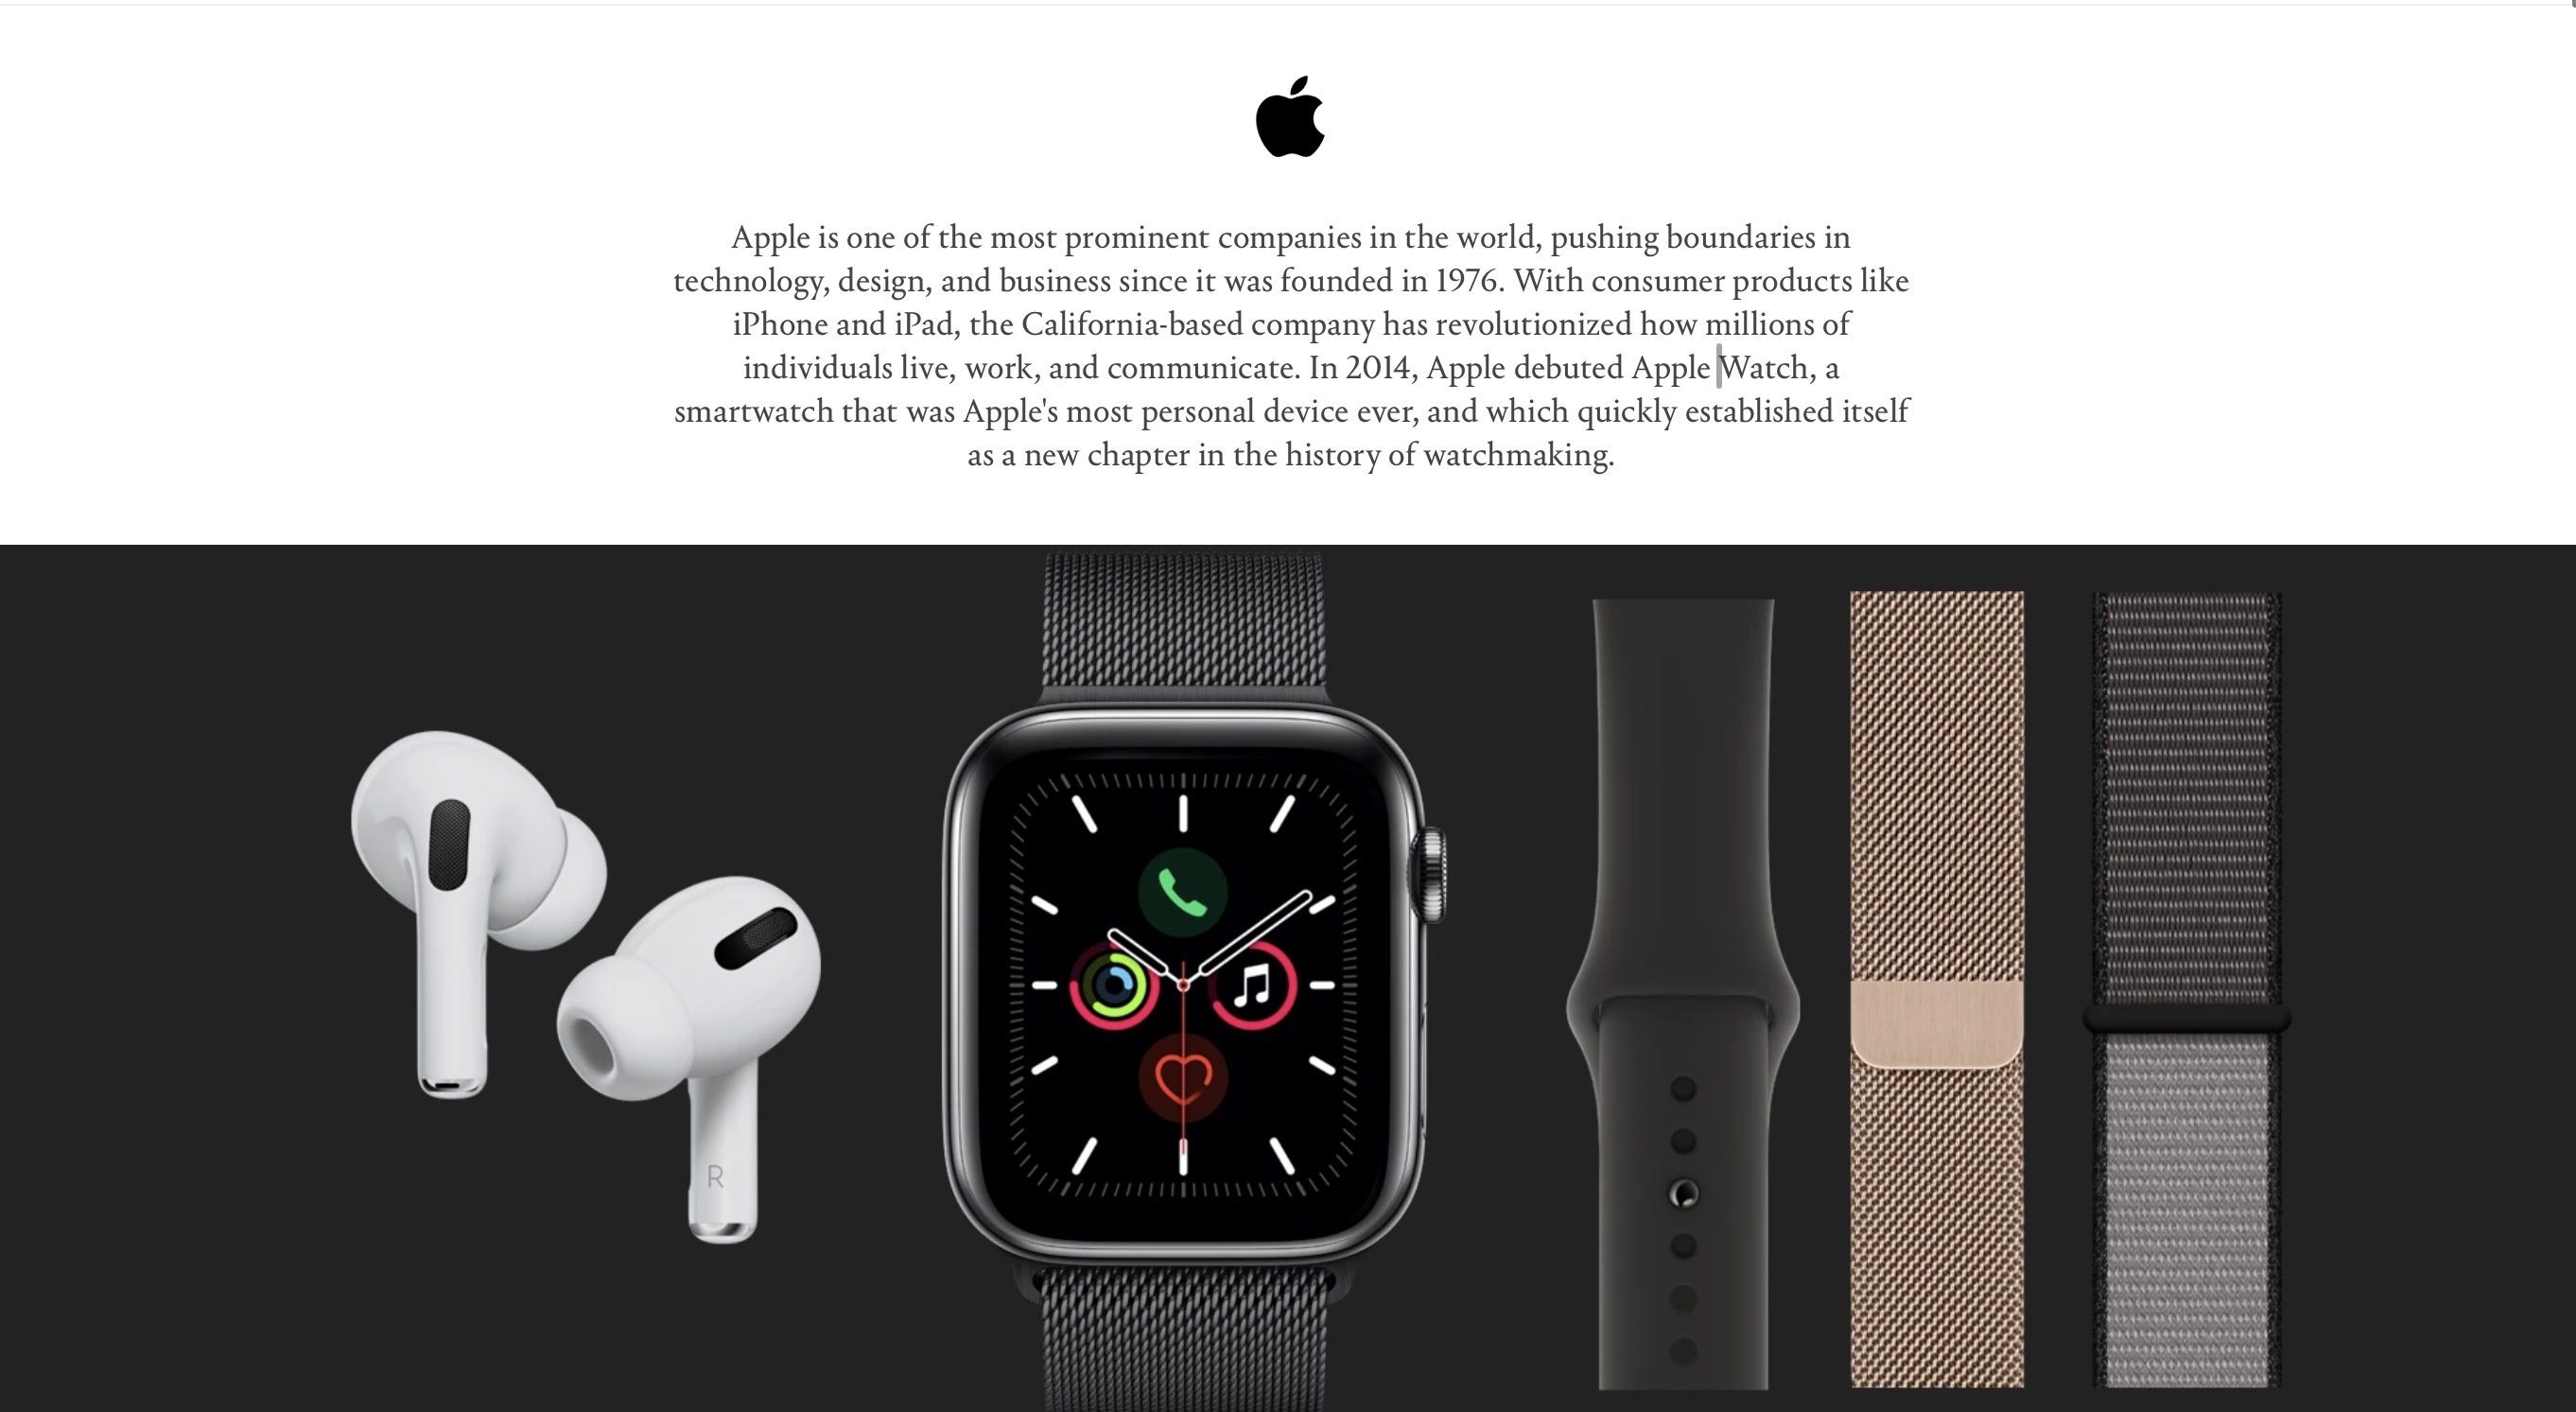 photo of Hodinkee teams up with Apple to become authorized retailer for Apple Watch Series 5 and accessories image